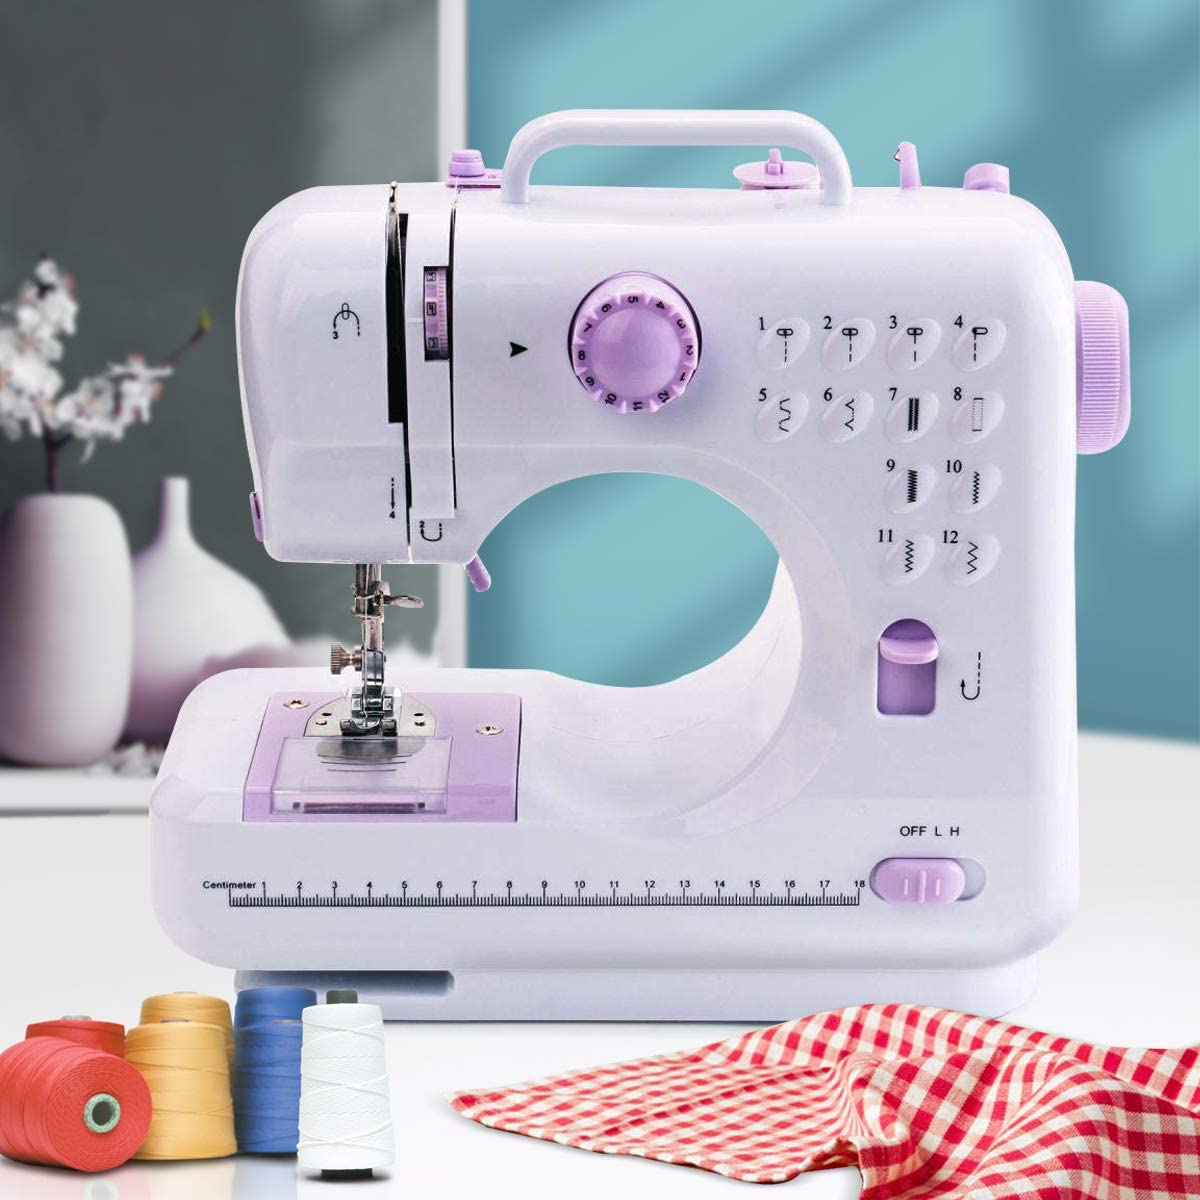 Portable Mini Sewing Machine Multifunction Electric Household Sewing Machine Tool for Adult Beginners With 12 Built-in Stitches, 2 Speeds Double Thread, LED Light, Thread Cutter and Foot Pedal